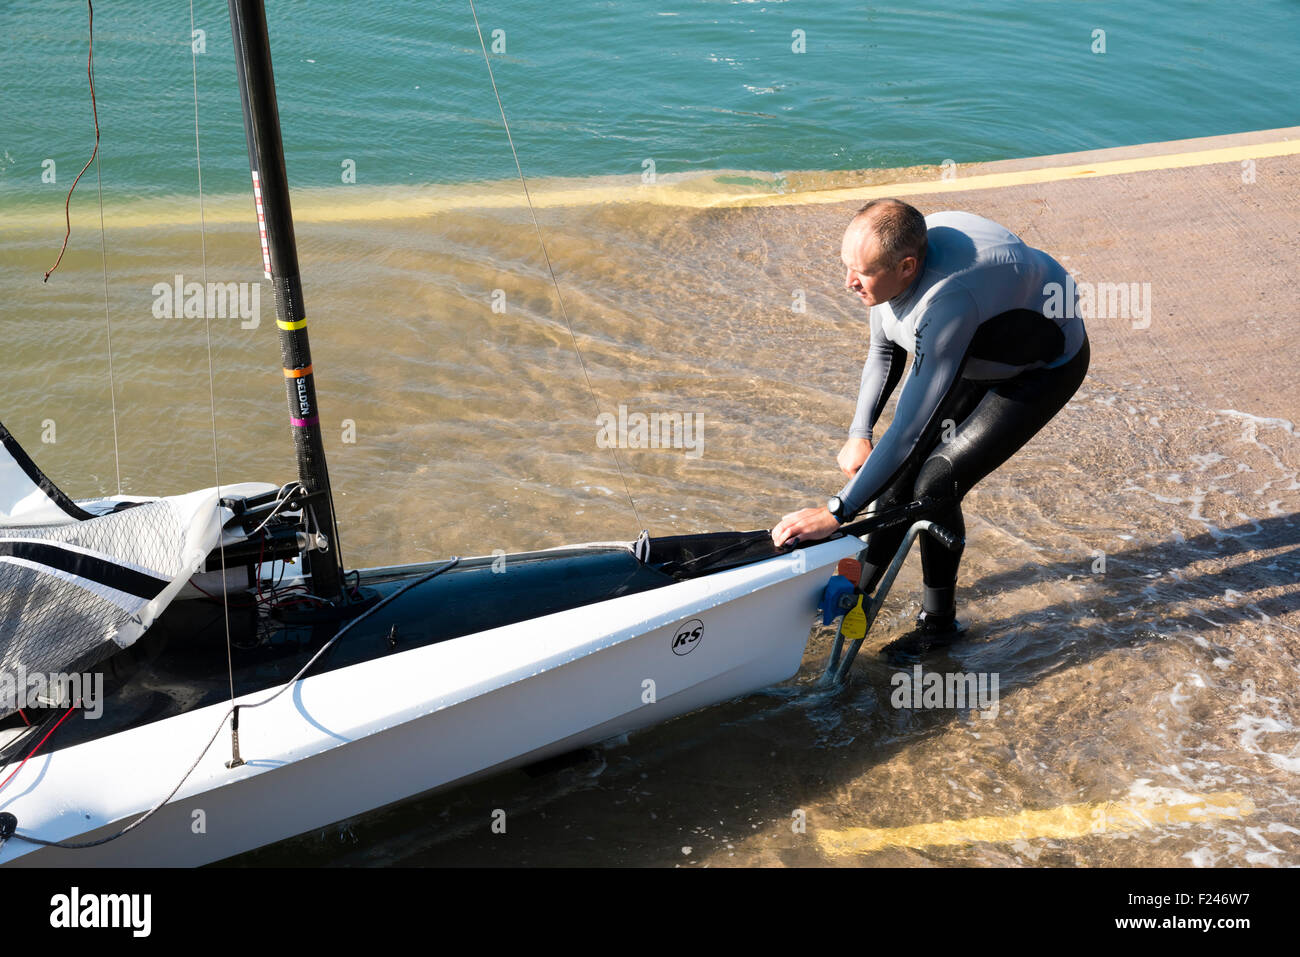 Sailing Dinghy being pulled up a slipway by a man wearing a wetsuit, UK. - Stock Image